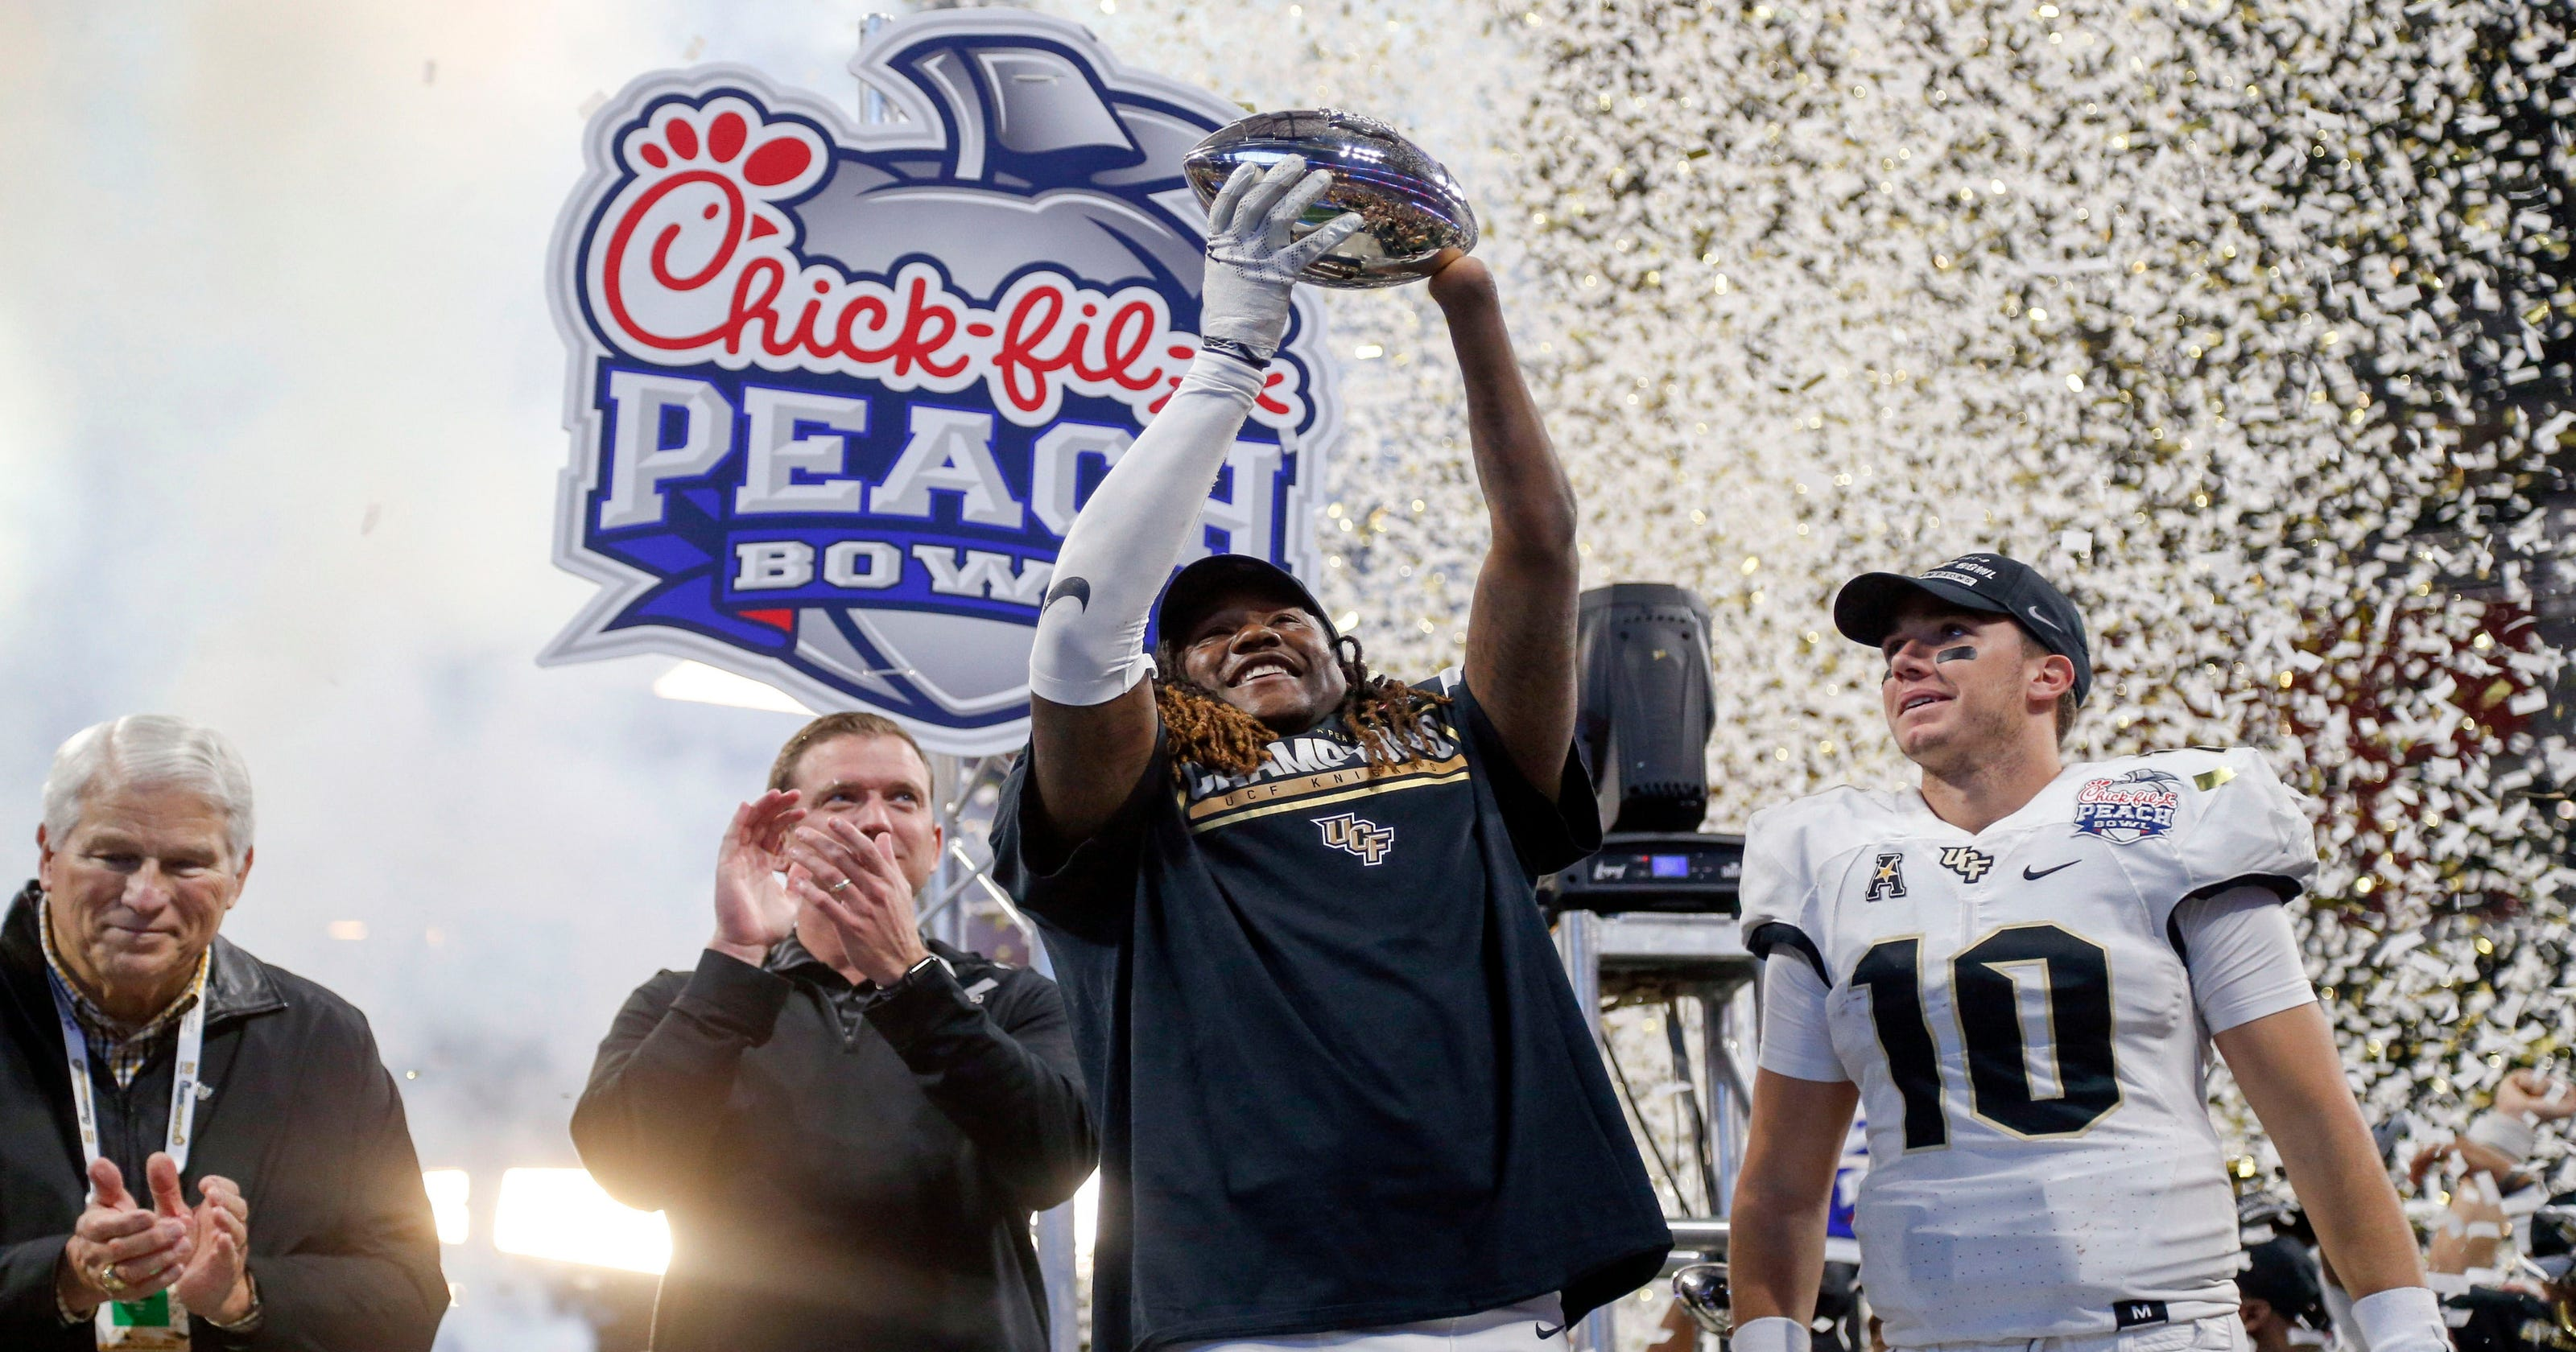 How have Central Florida and others on Big 12 expansion